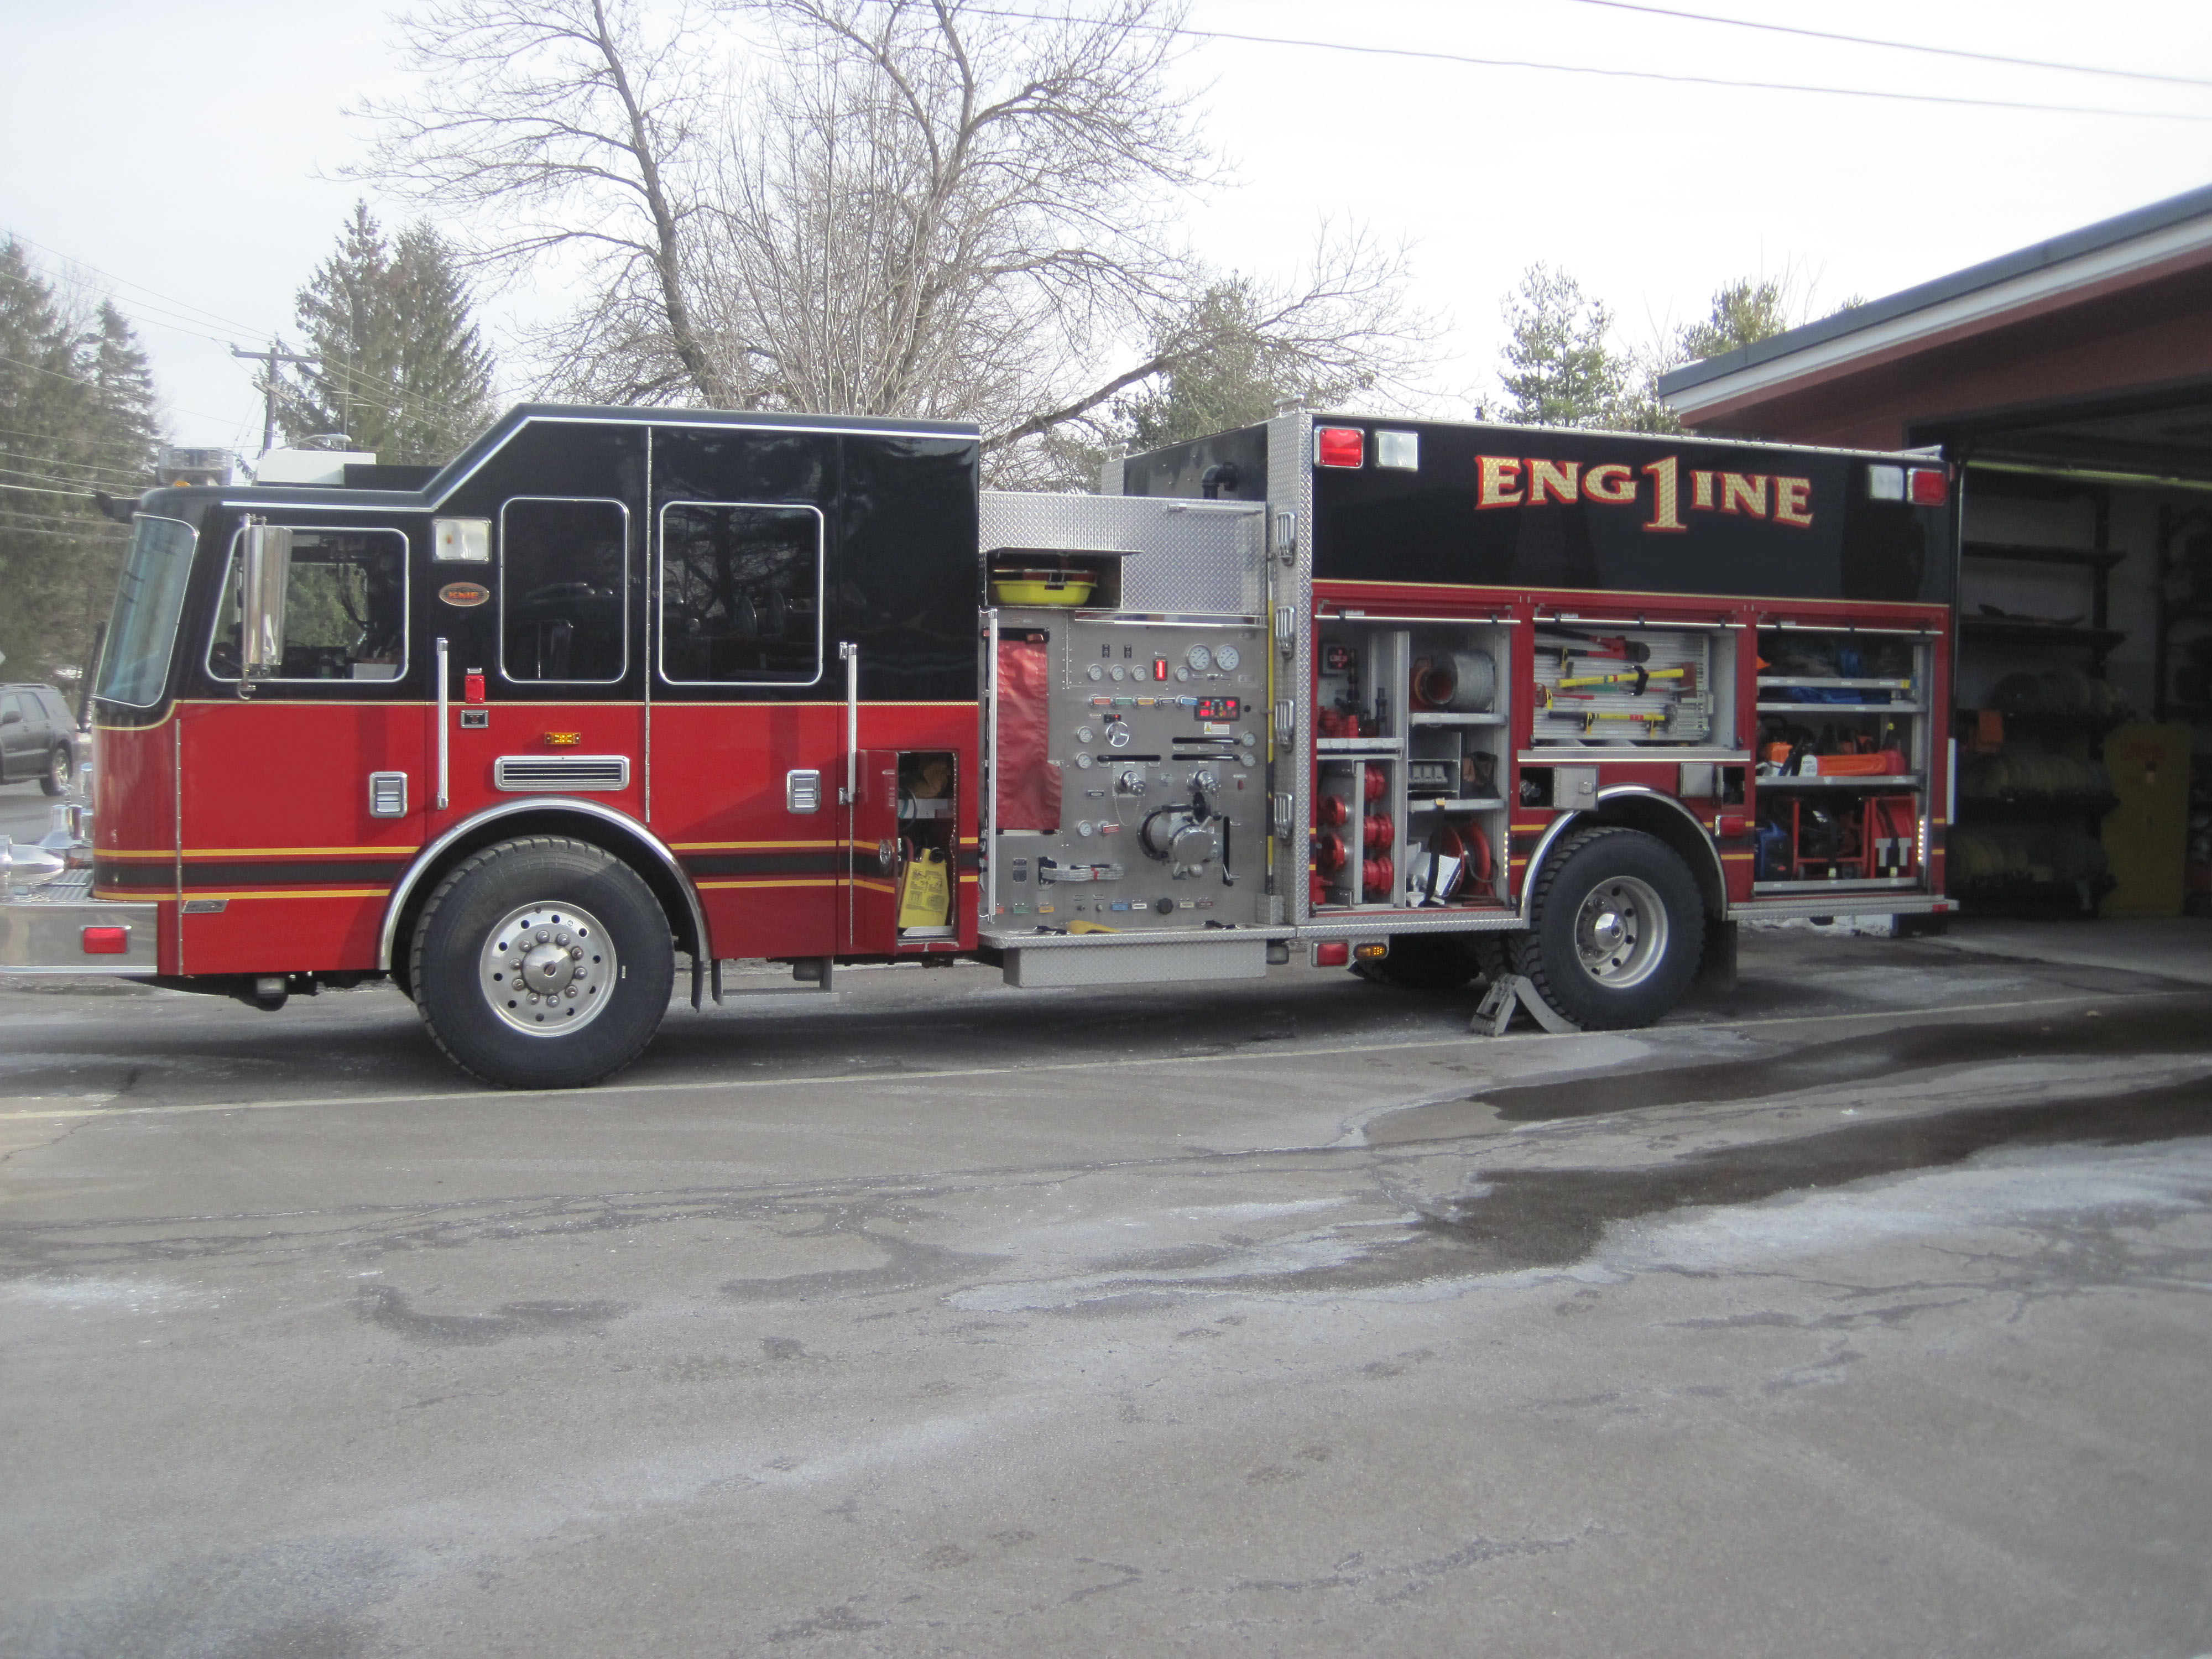 Kme pumper photo - 8